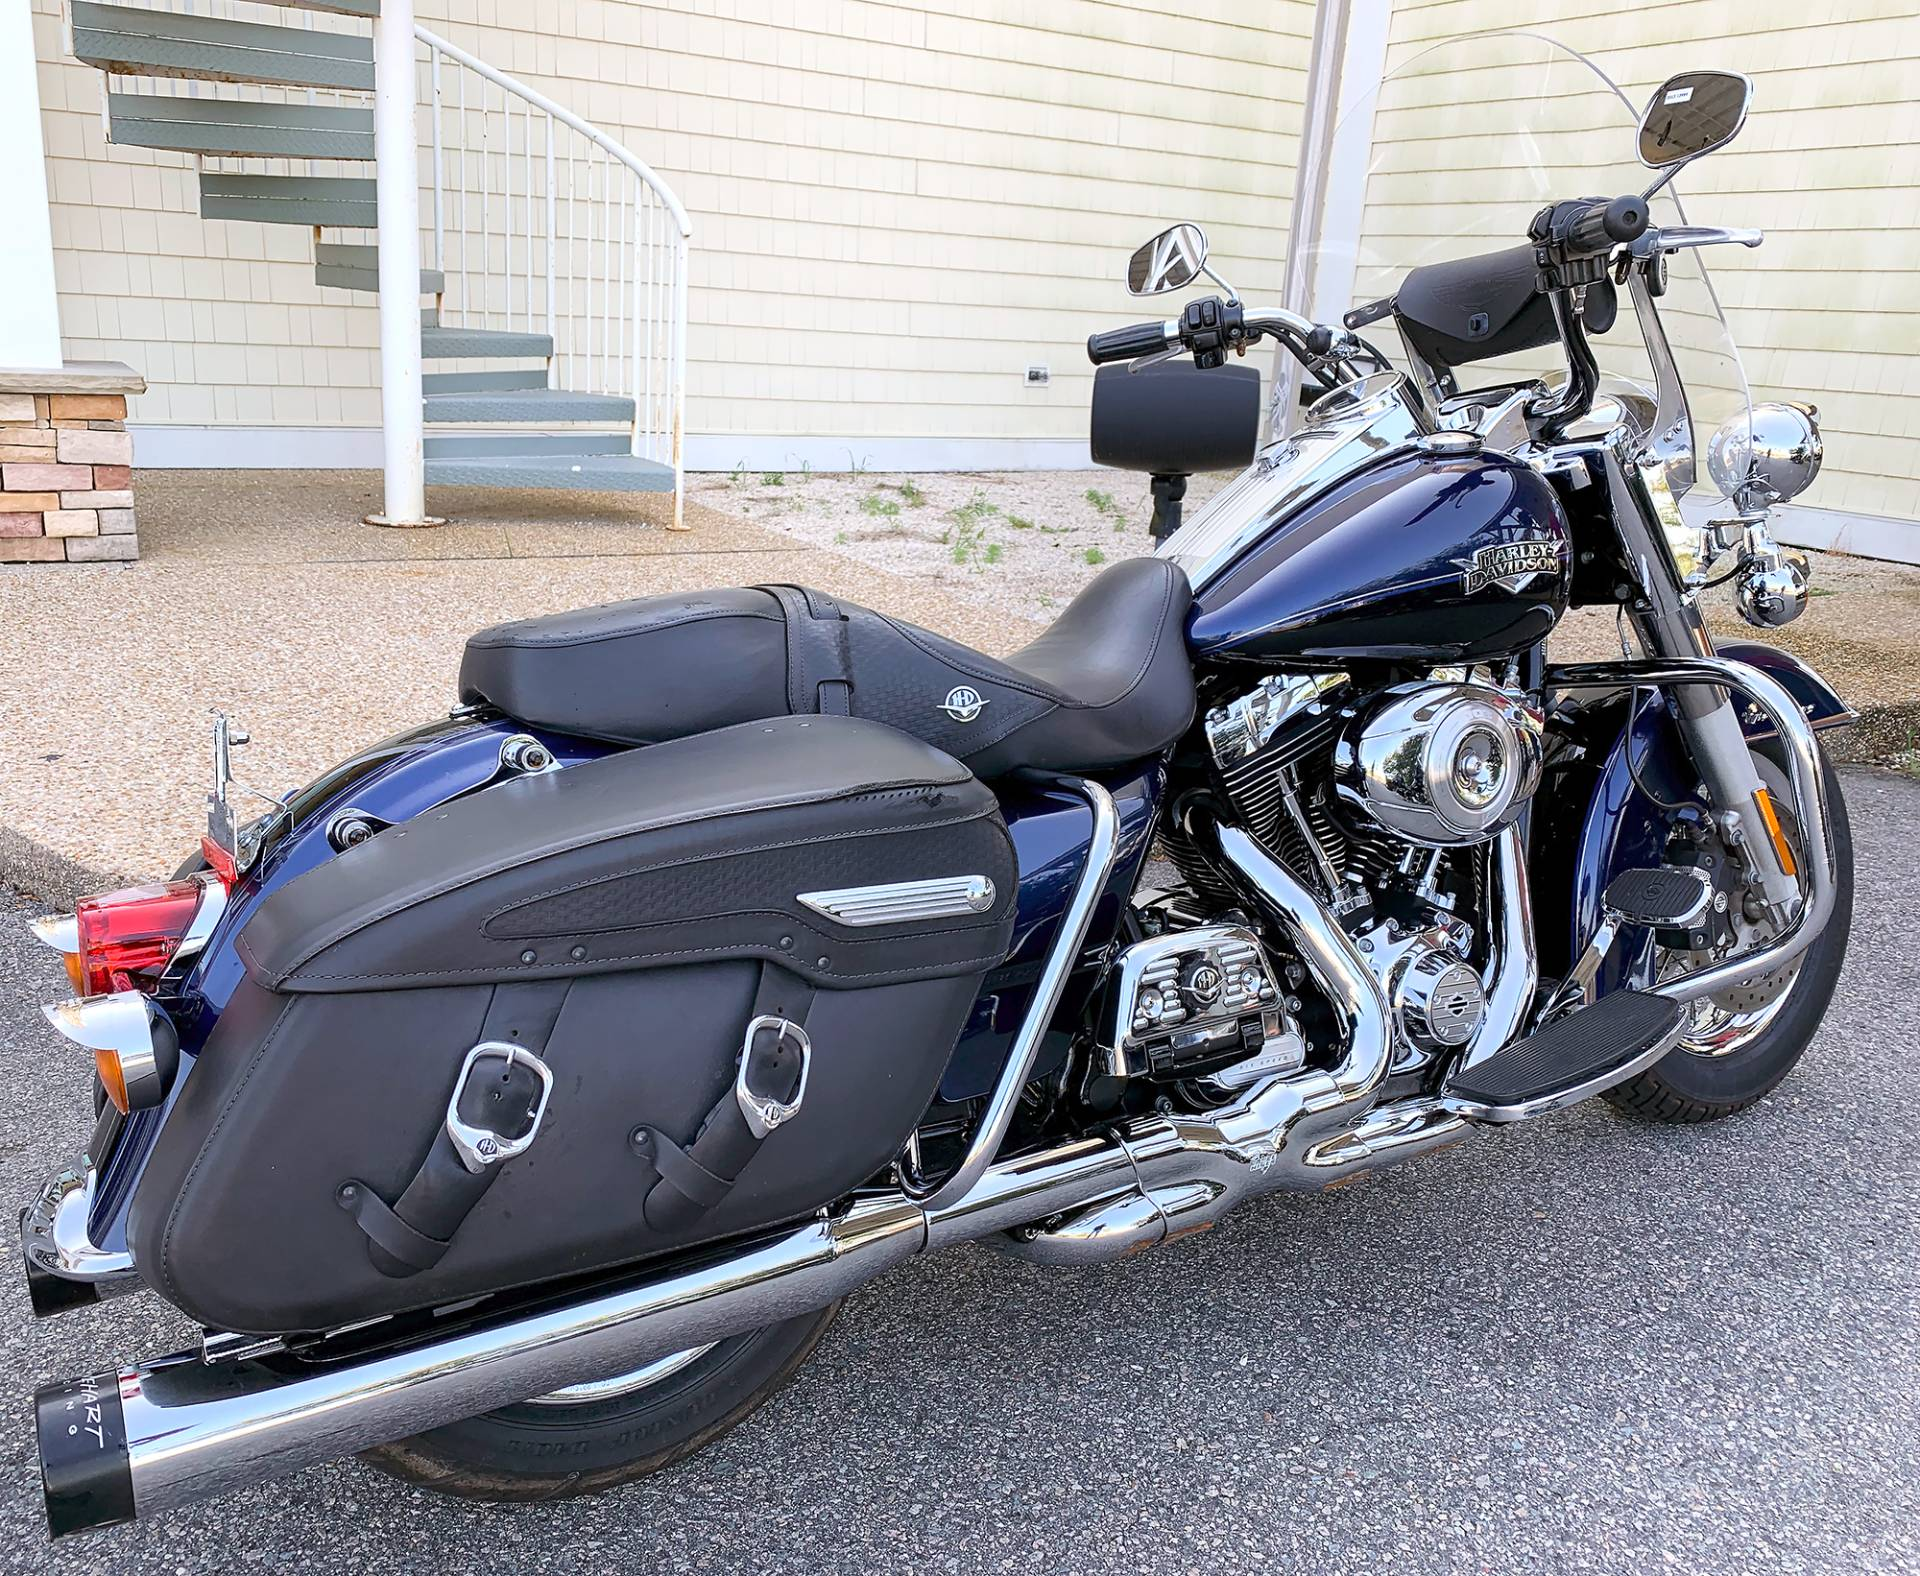 2013 Harley-Davidson Road King® Classic in Shallotte, North Carolina - Photo 4